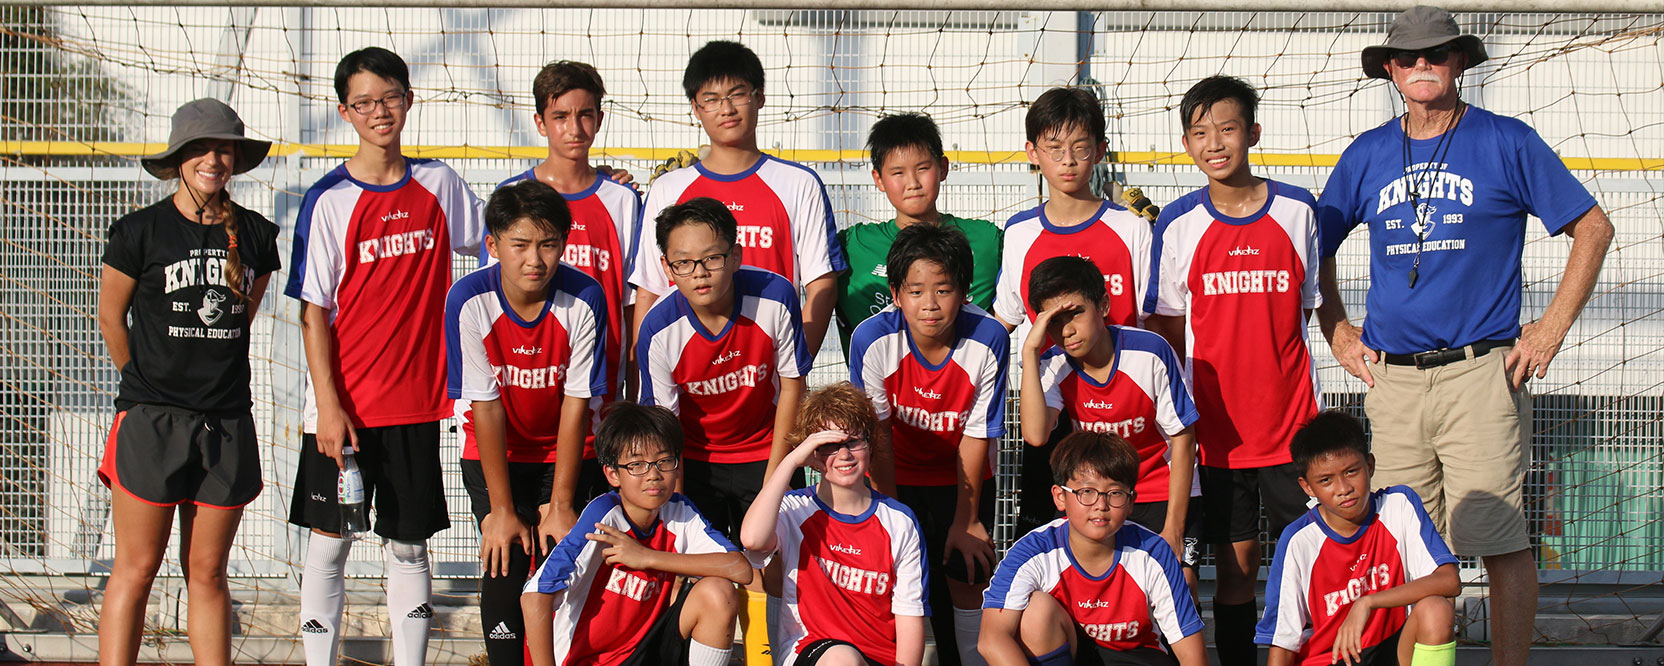 ICS Singapore middle school soccer team poses for a team photo